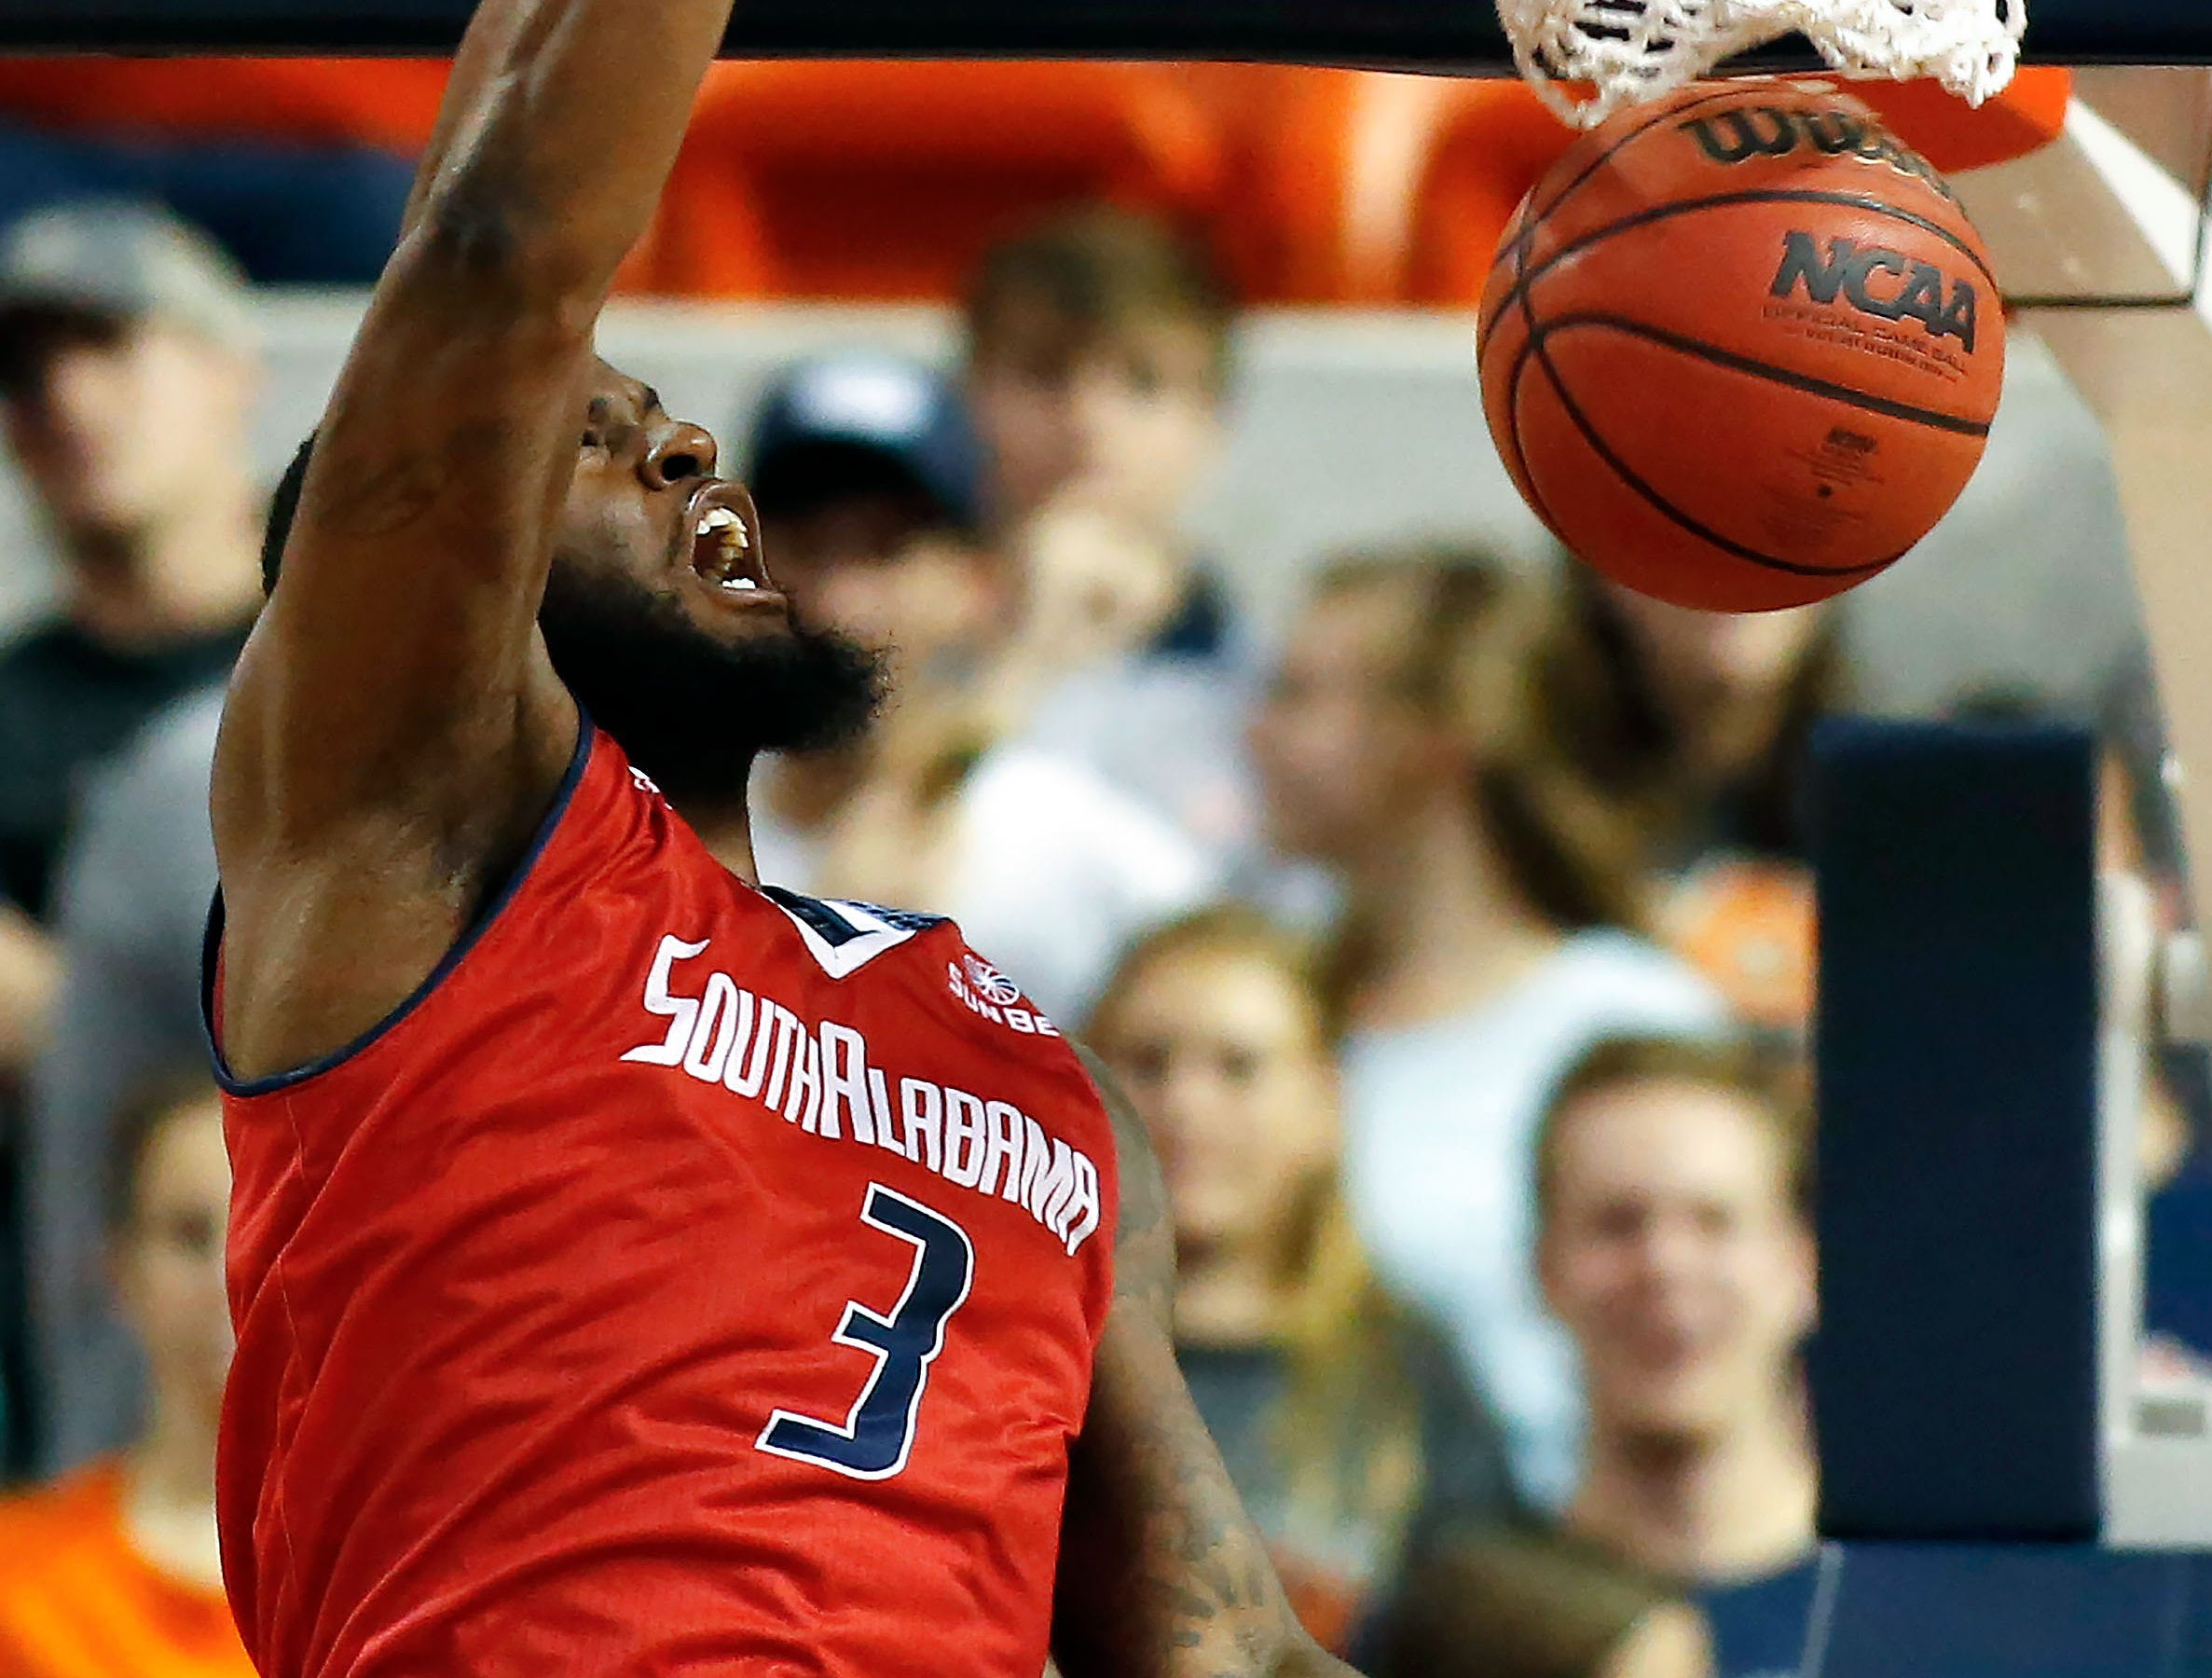 Nov 6, 2018; Auburn, AL, USA; South Alabama Jaguars forward Kevin Morris (3) dunks against the Auburn Tigers during the second half at Auburn Arena. Mandatory Credit: John Reed-USA TODAY Sports